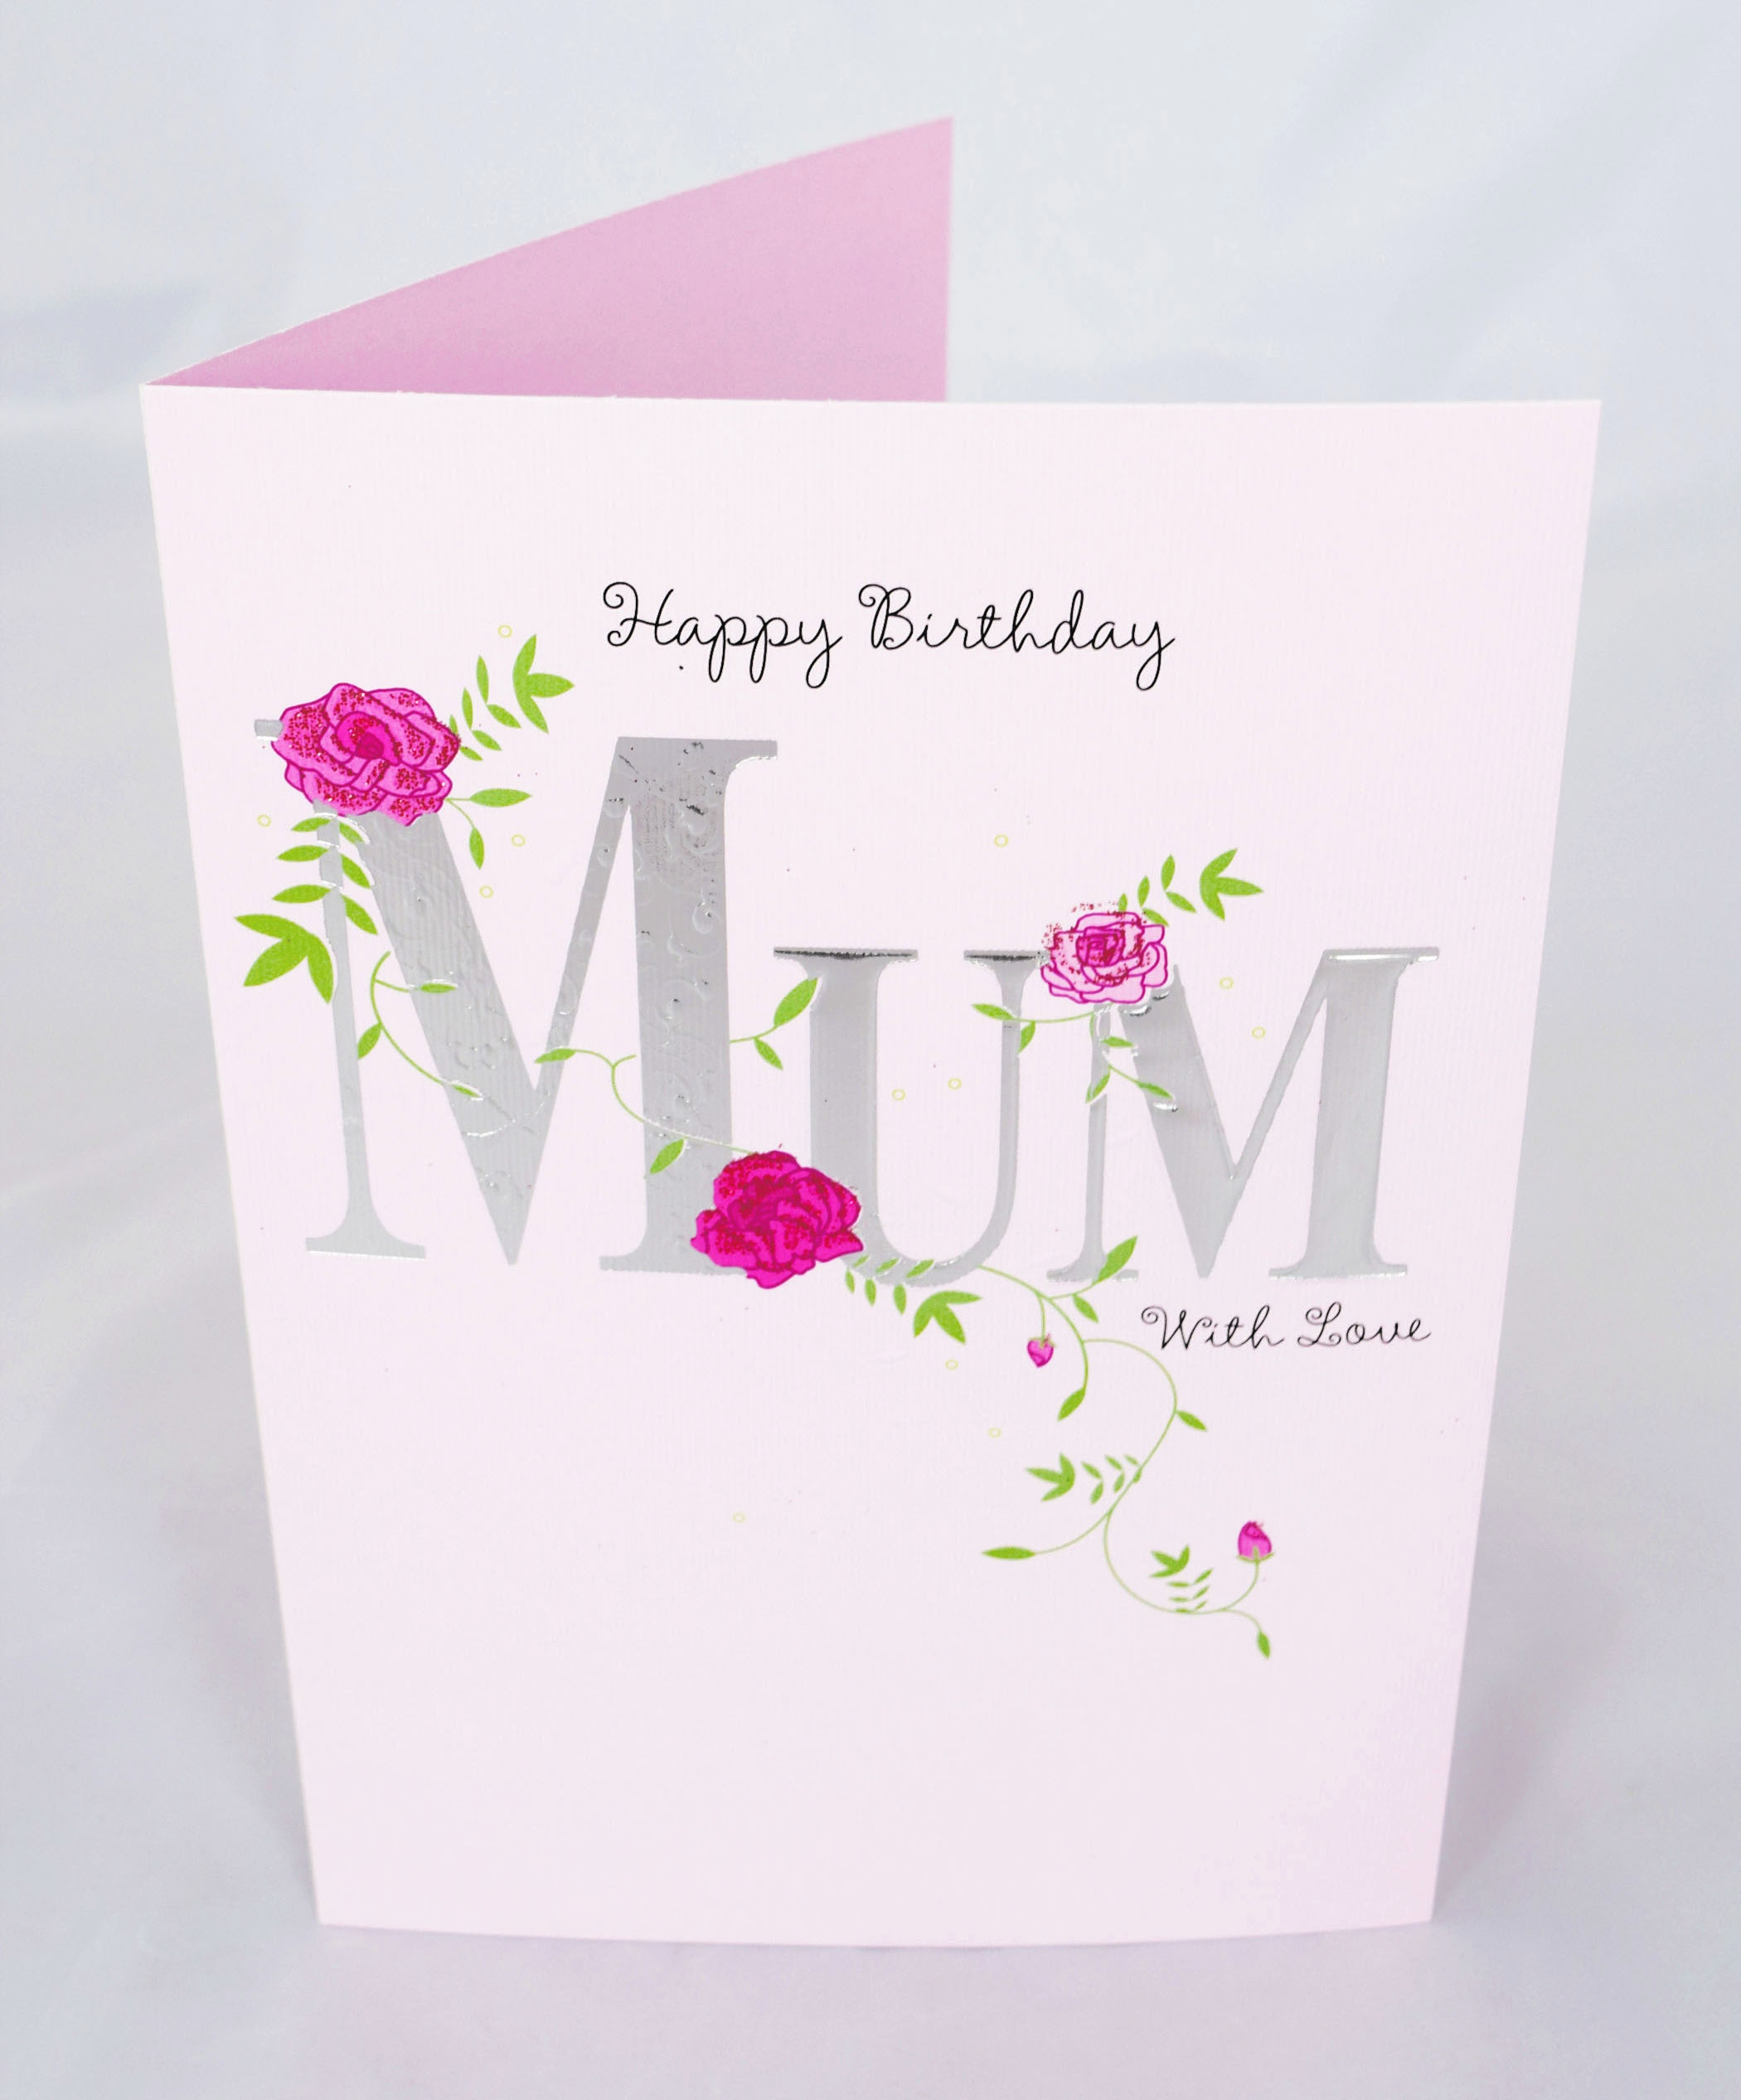 automatic birthday card service ; automatic-birthday-card-service-elegant-happy-birthday-mum-card-pink-floral-verse-poem-greeting-cute-for-of-automatic-birthday-card-service